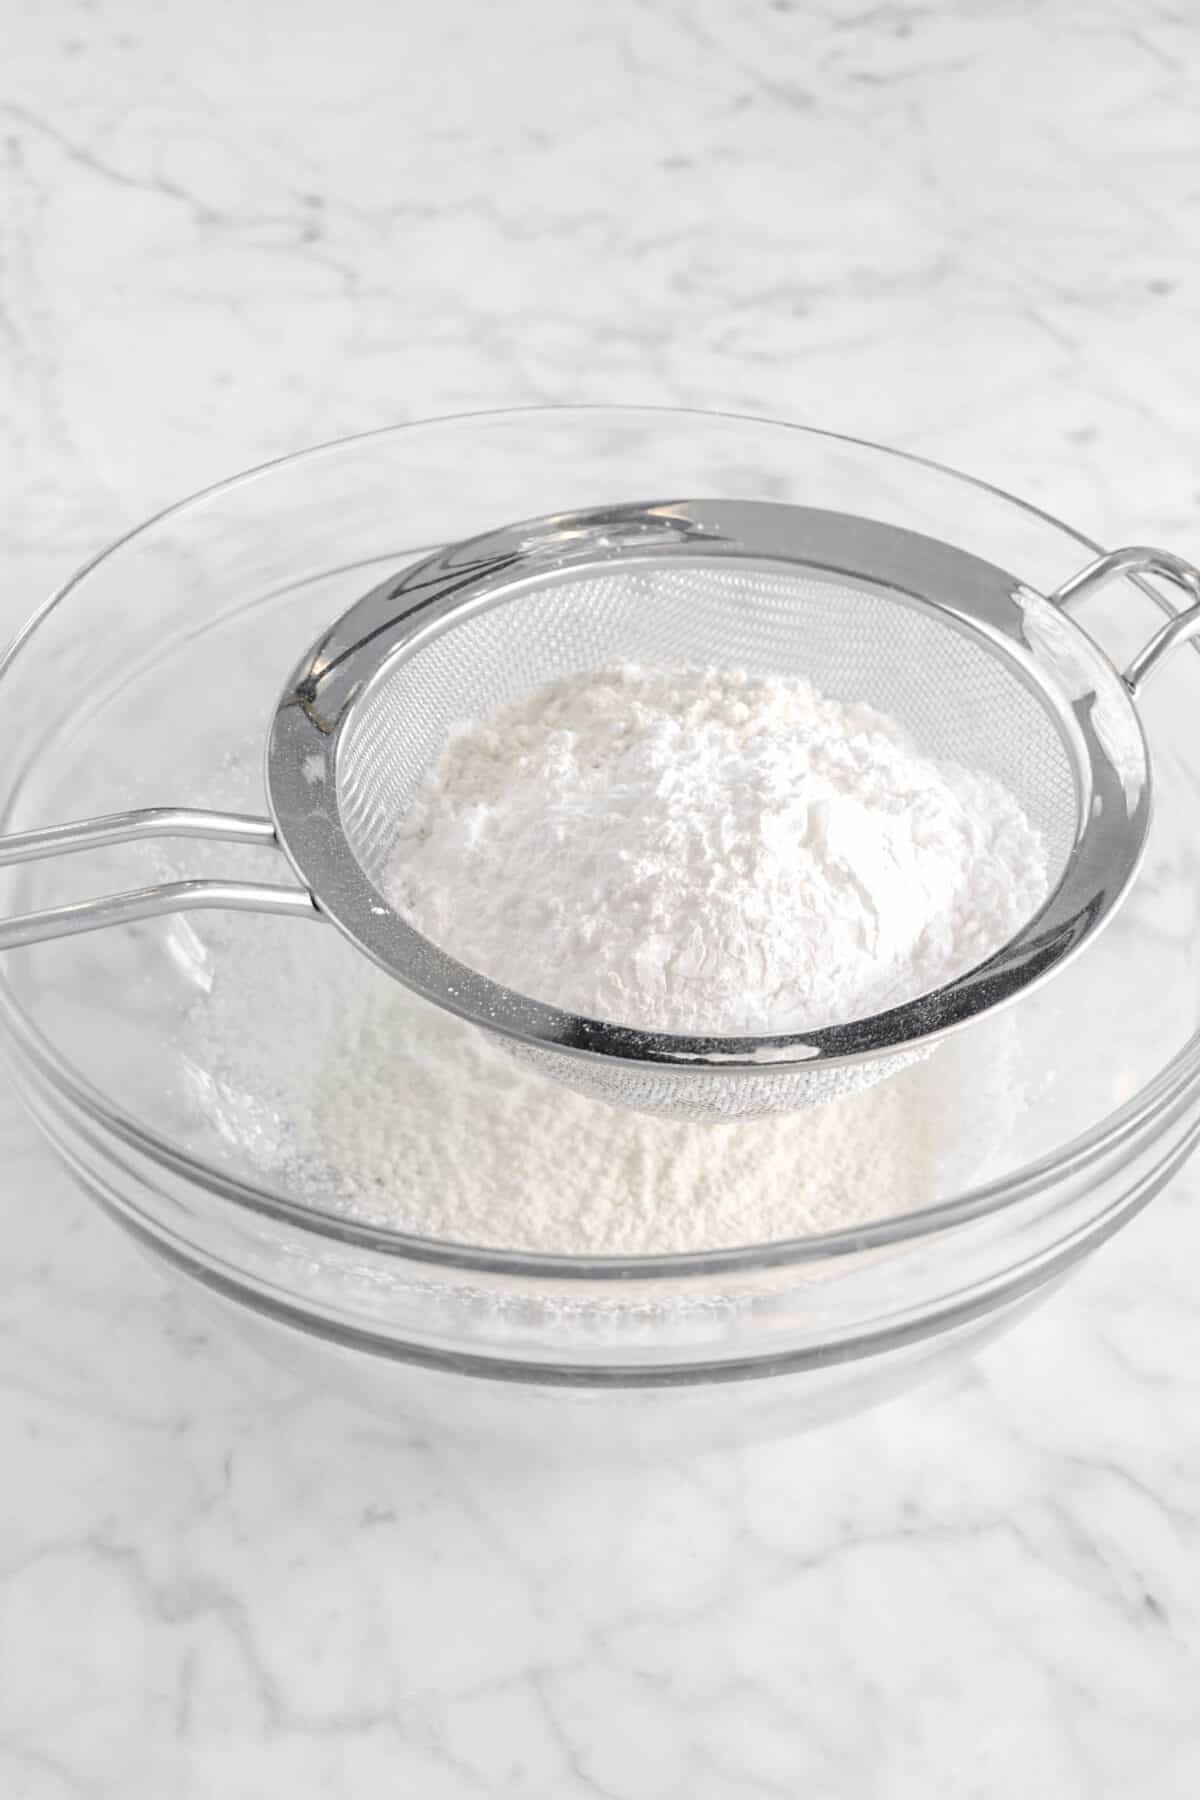 flour and sugar in sieve over glass bowl